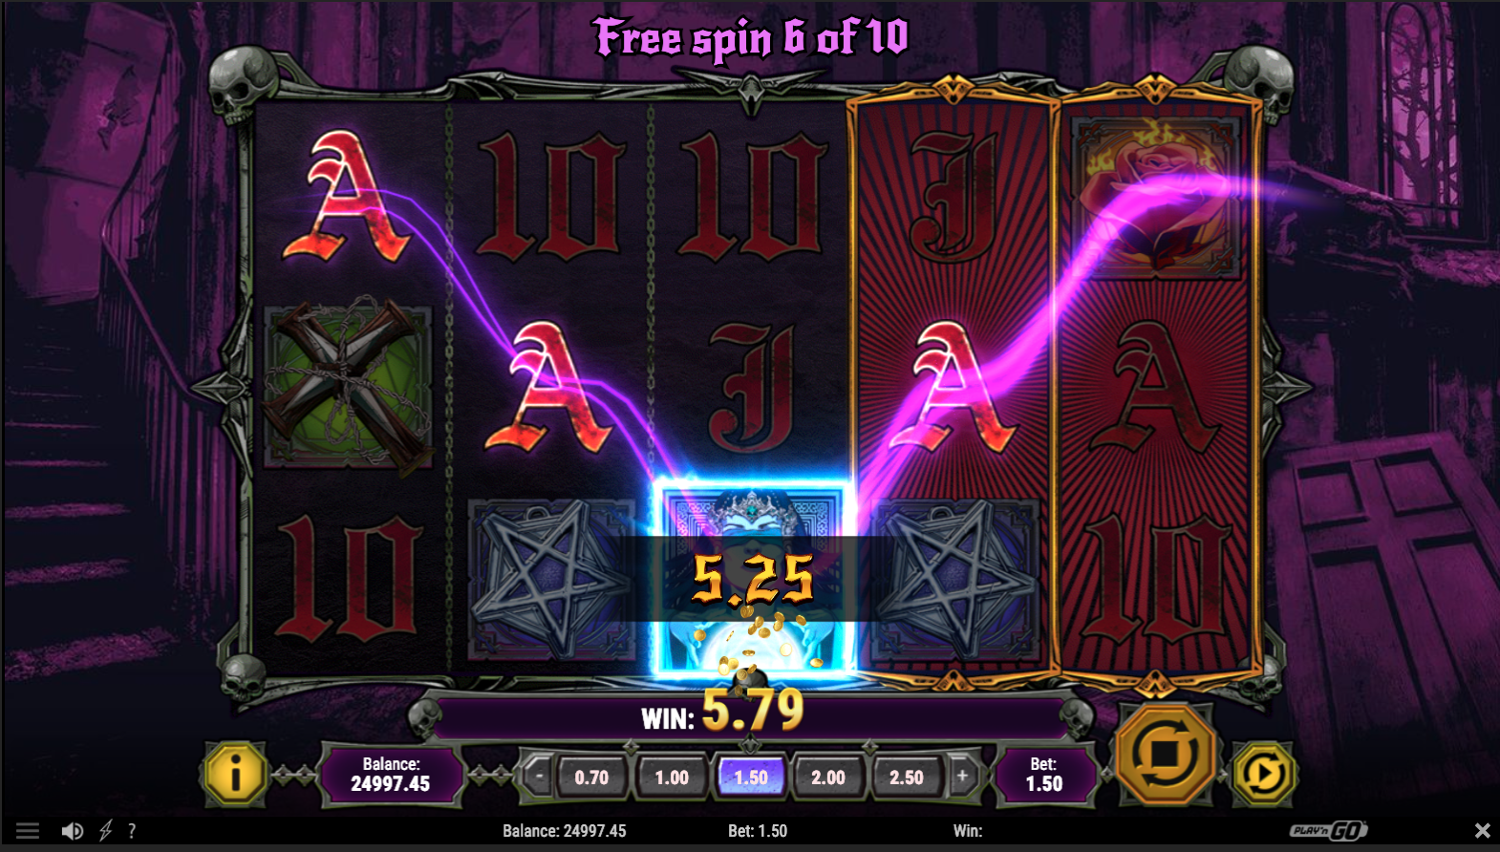 House of Doom - Free spins win